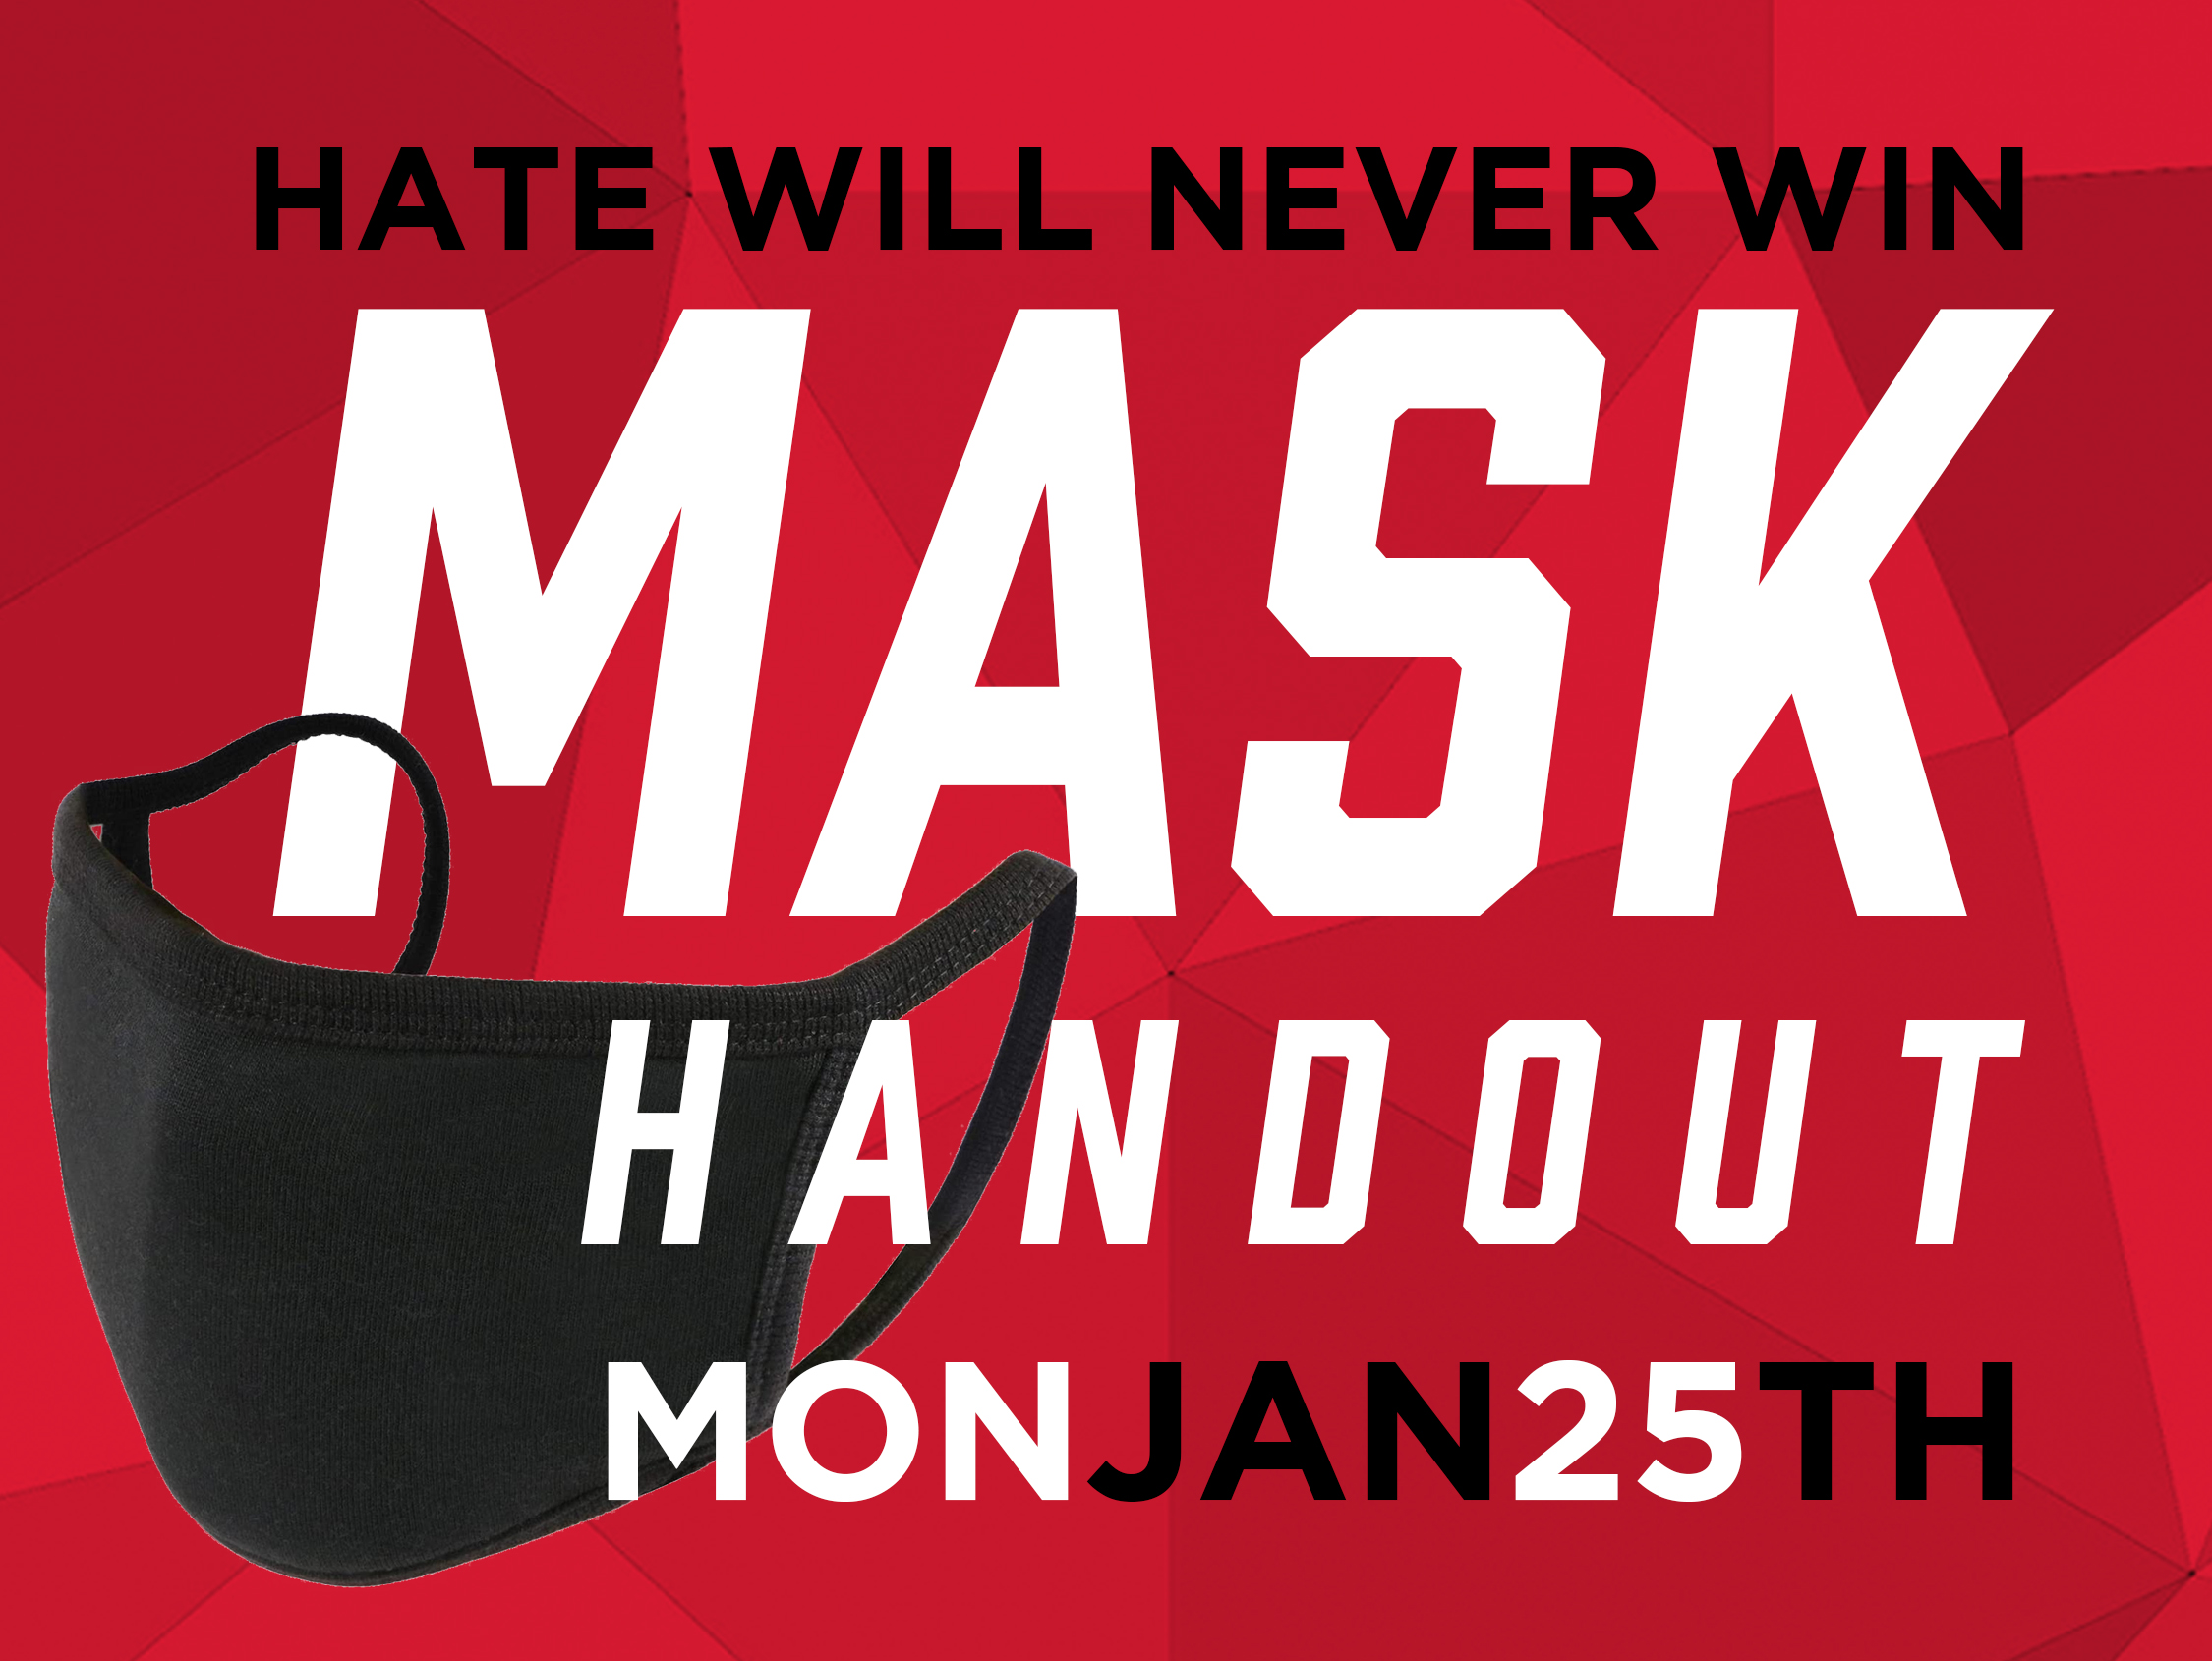 "The Office of Academic Success and Intercultural Services is handing out 500 free face masks imprinted with ""Hate Will Never Win"" from 12 to 5 p.m. at the Jackie Gaughan Multicultural Center."